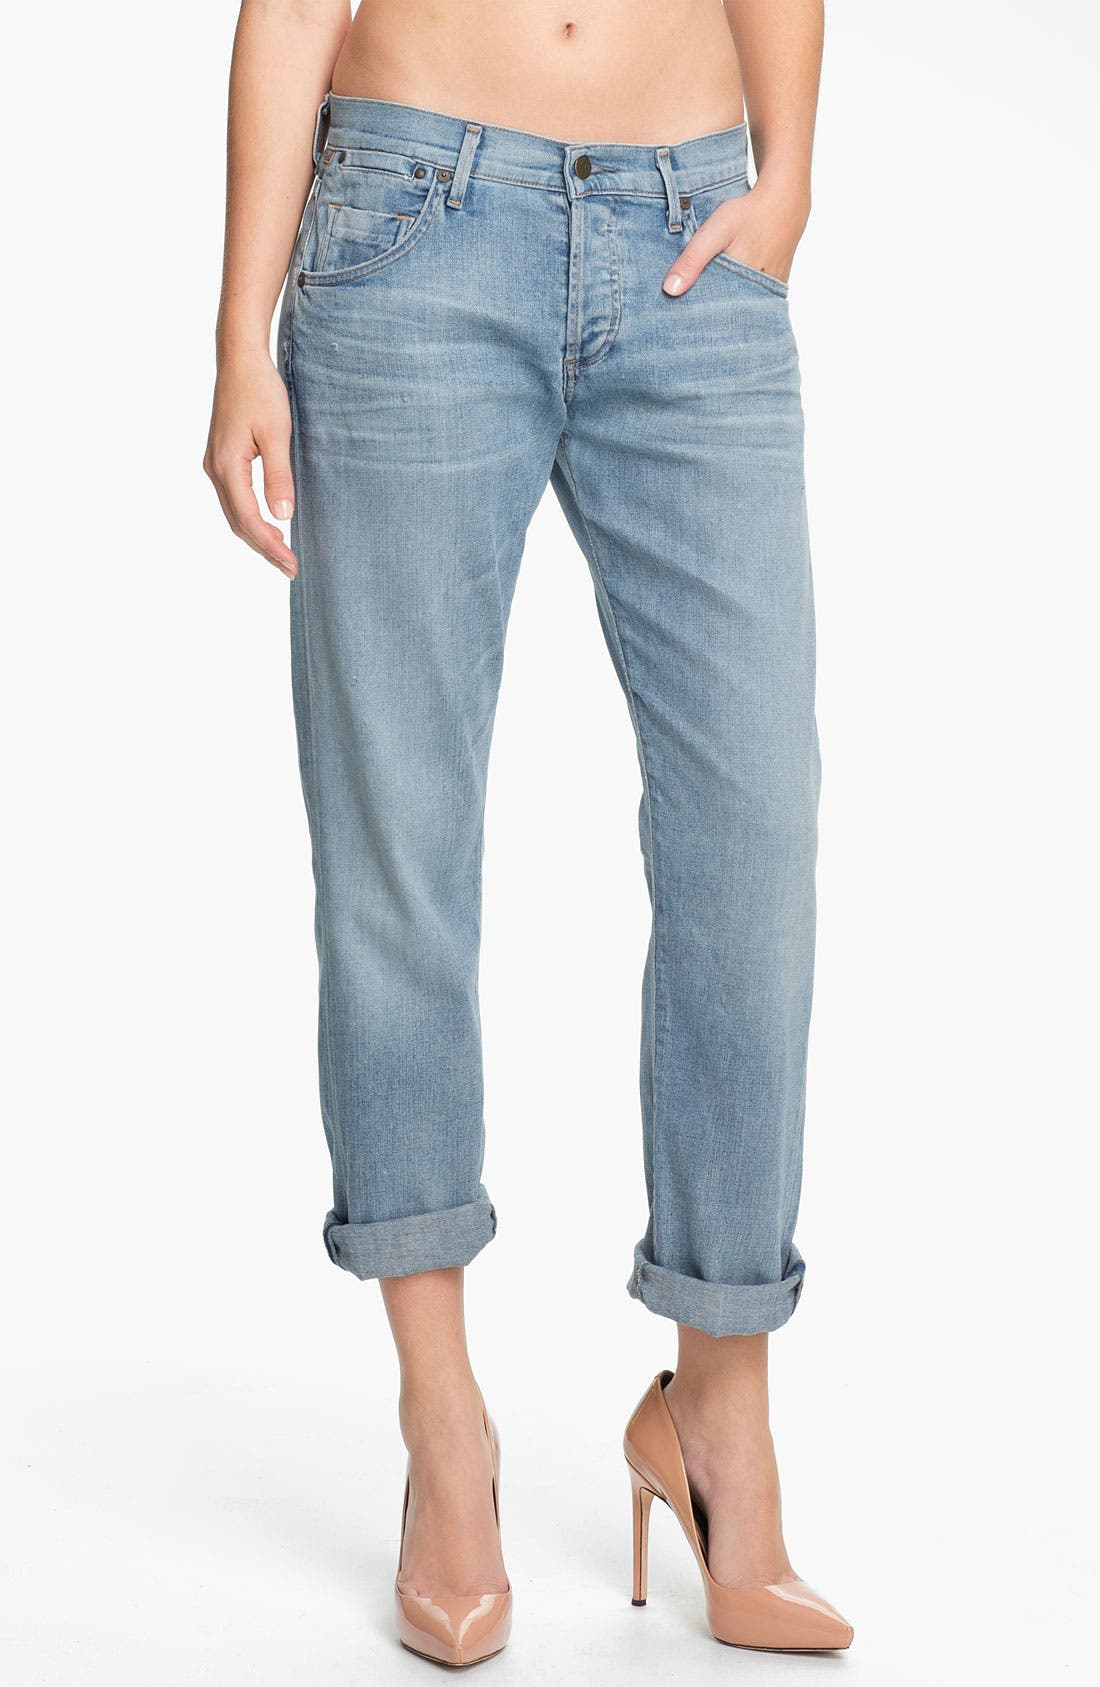 Alternate Image 1 Selected - Citizens of Humanity 'Dylan' Loose Fit Jeans (Seychelles)